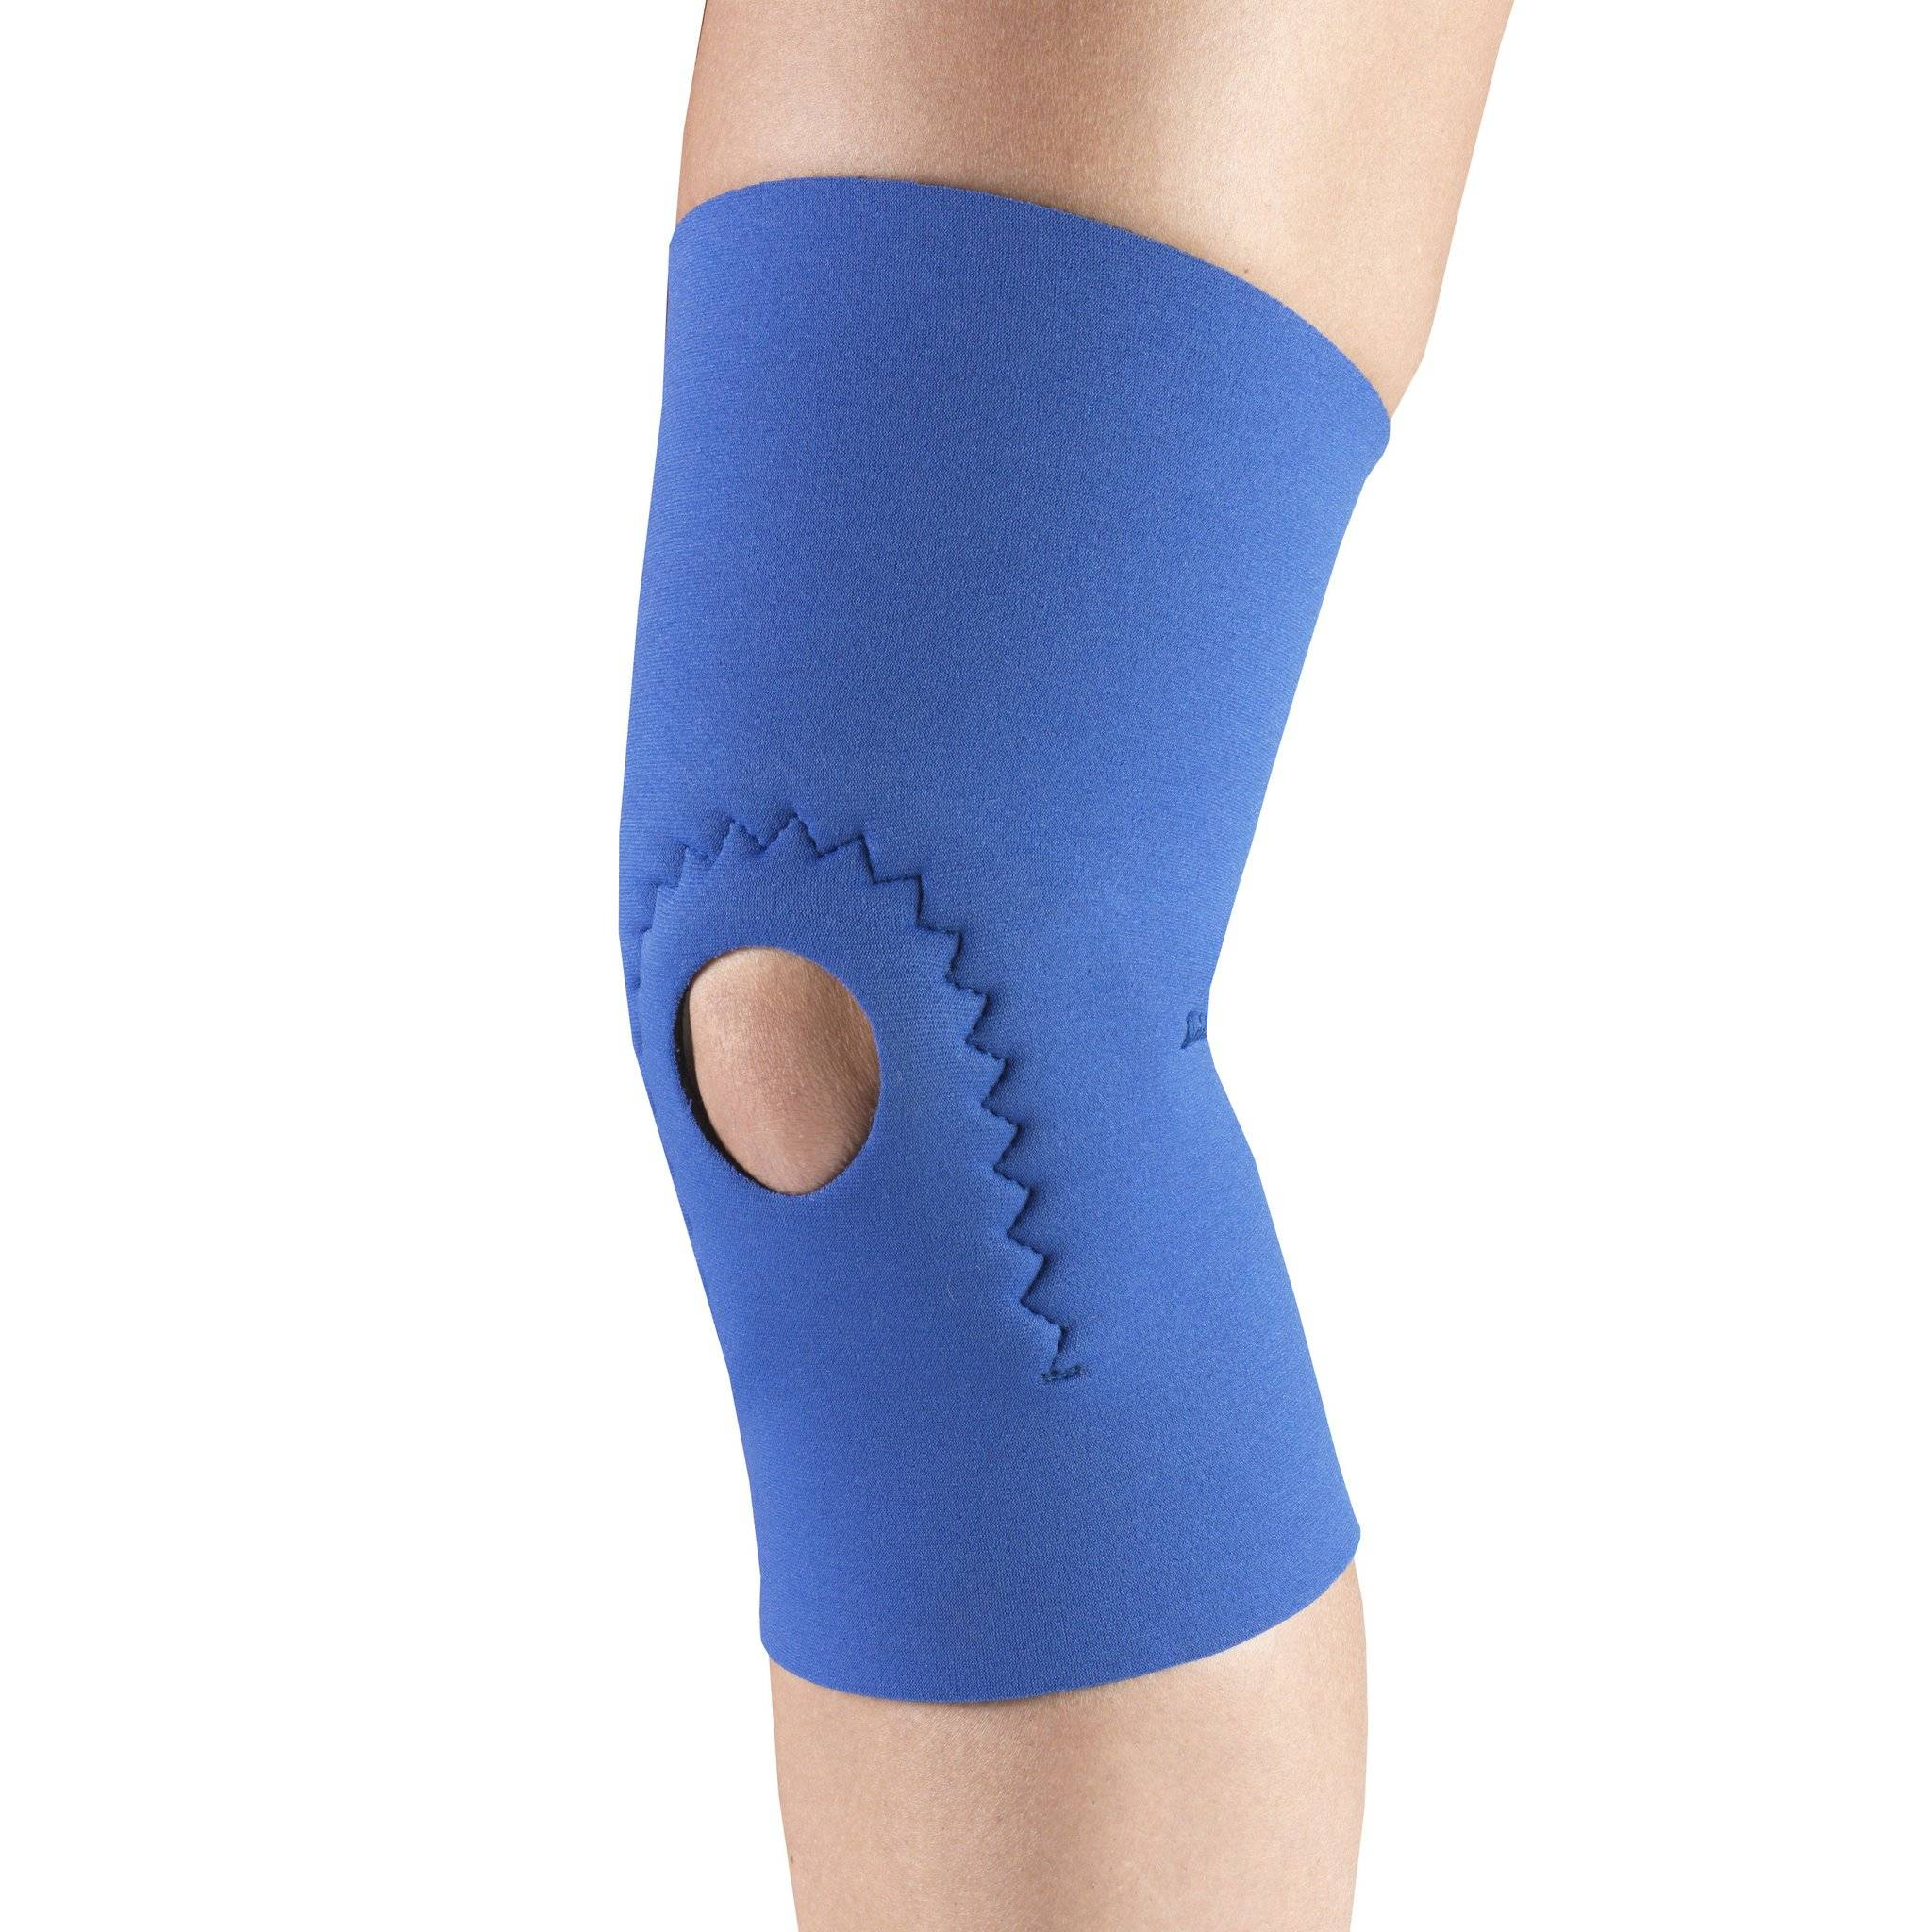 0142 / NEOPRENE KNEE SLEEVE-HOR SHU PAD